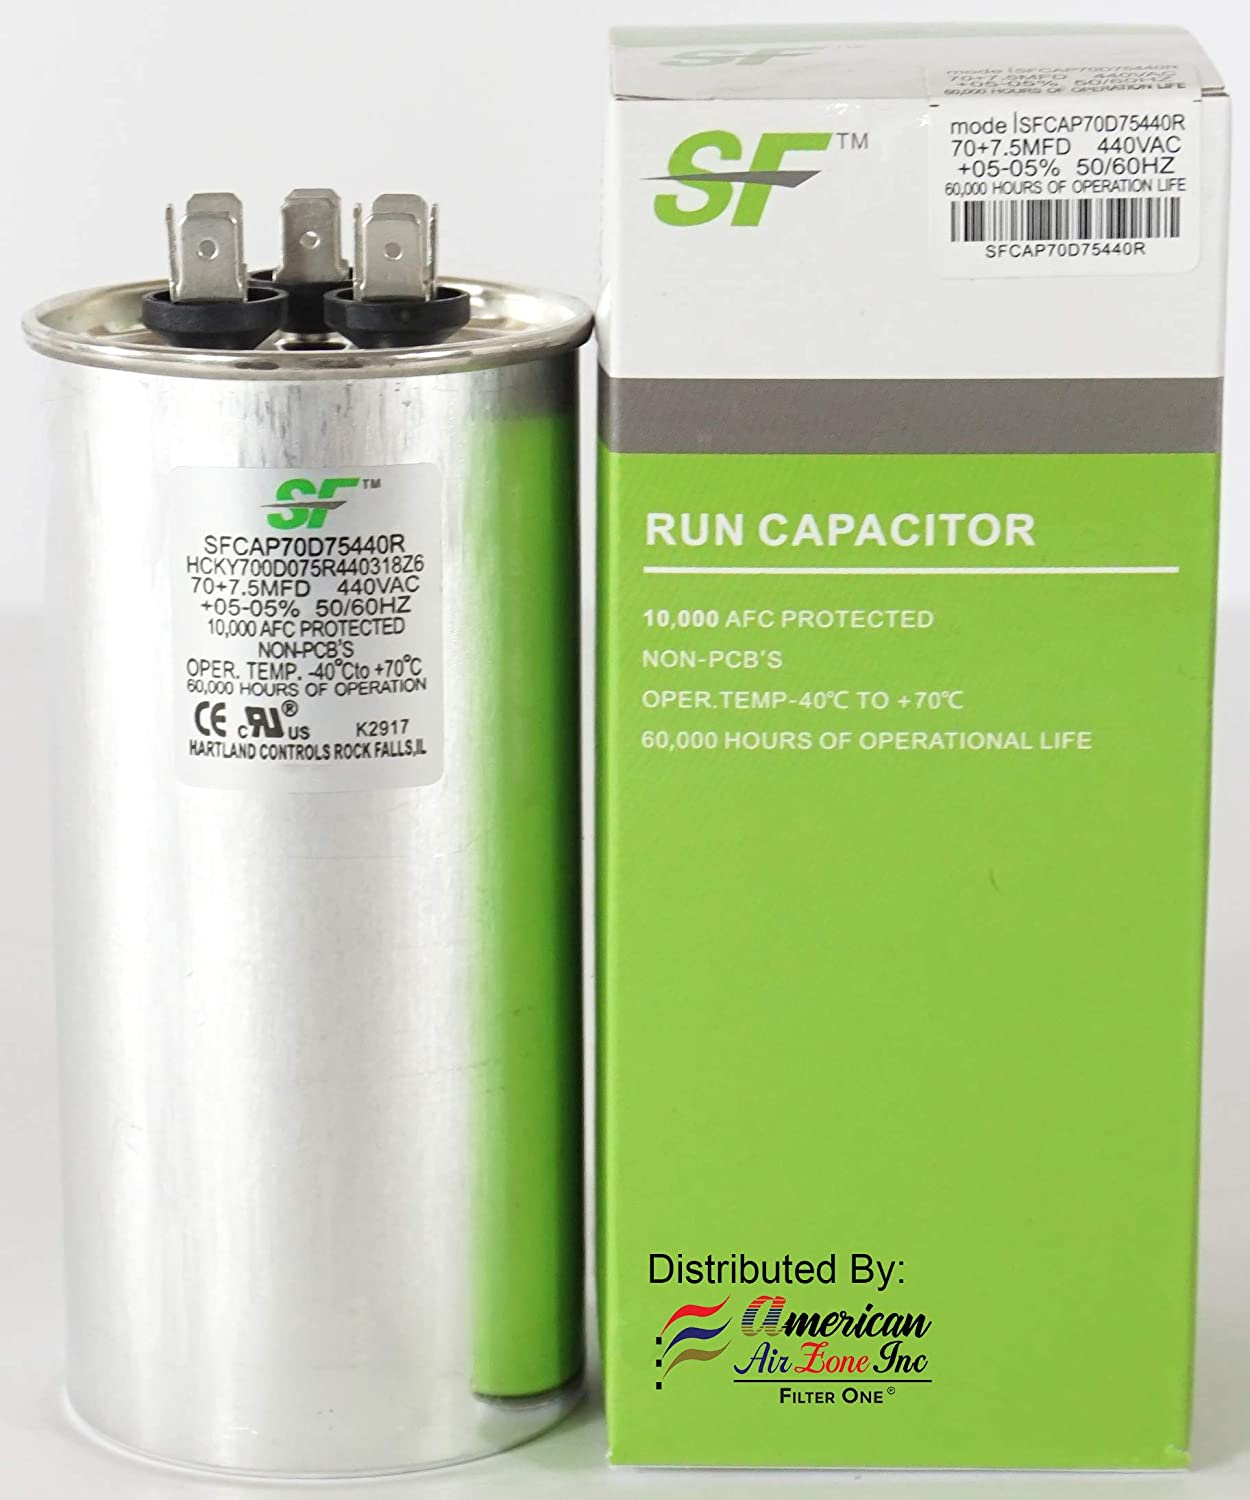 TRANE SF Dual Run Capacitor - 70+7.5 MFD μF (MicroFarad) - 370/440 Volts - Dual Run Capacitor-Round - (1-Pack) - For AC Motors, Fans or AC Compressors (Replaces other Brands Capacitors)